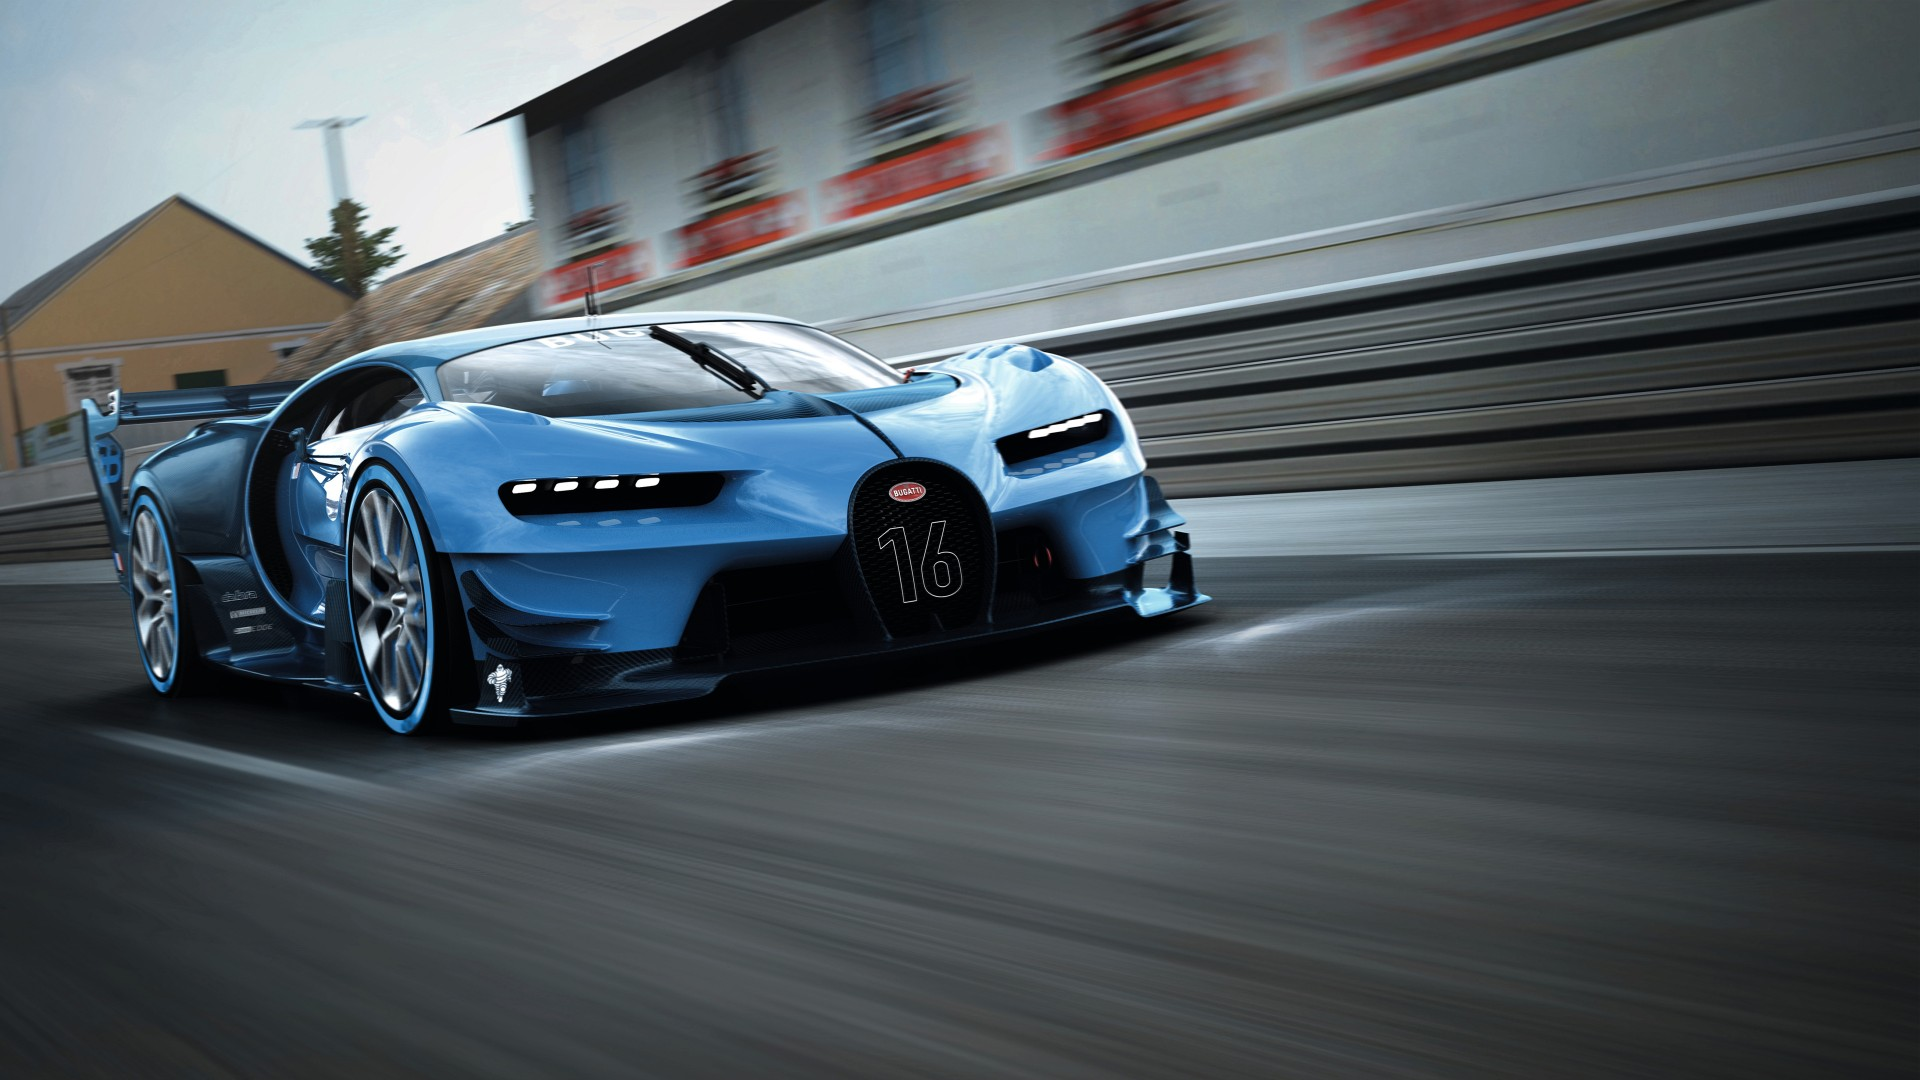 Mazda Car Hd Wallpaper Bugatti Vision Gran Turismo 2015 Wallpaper Hd Car